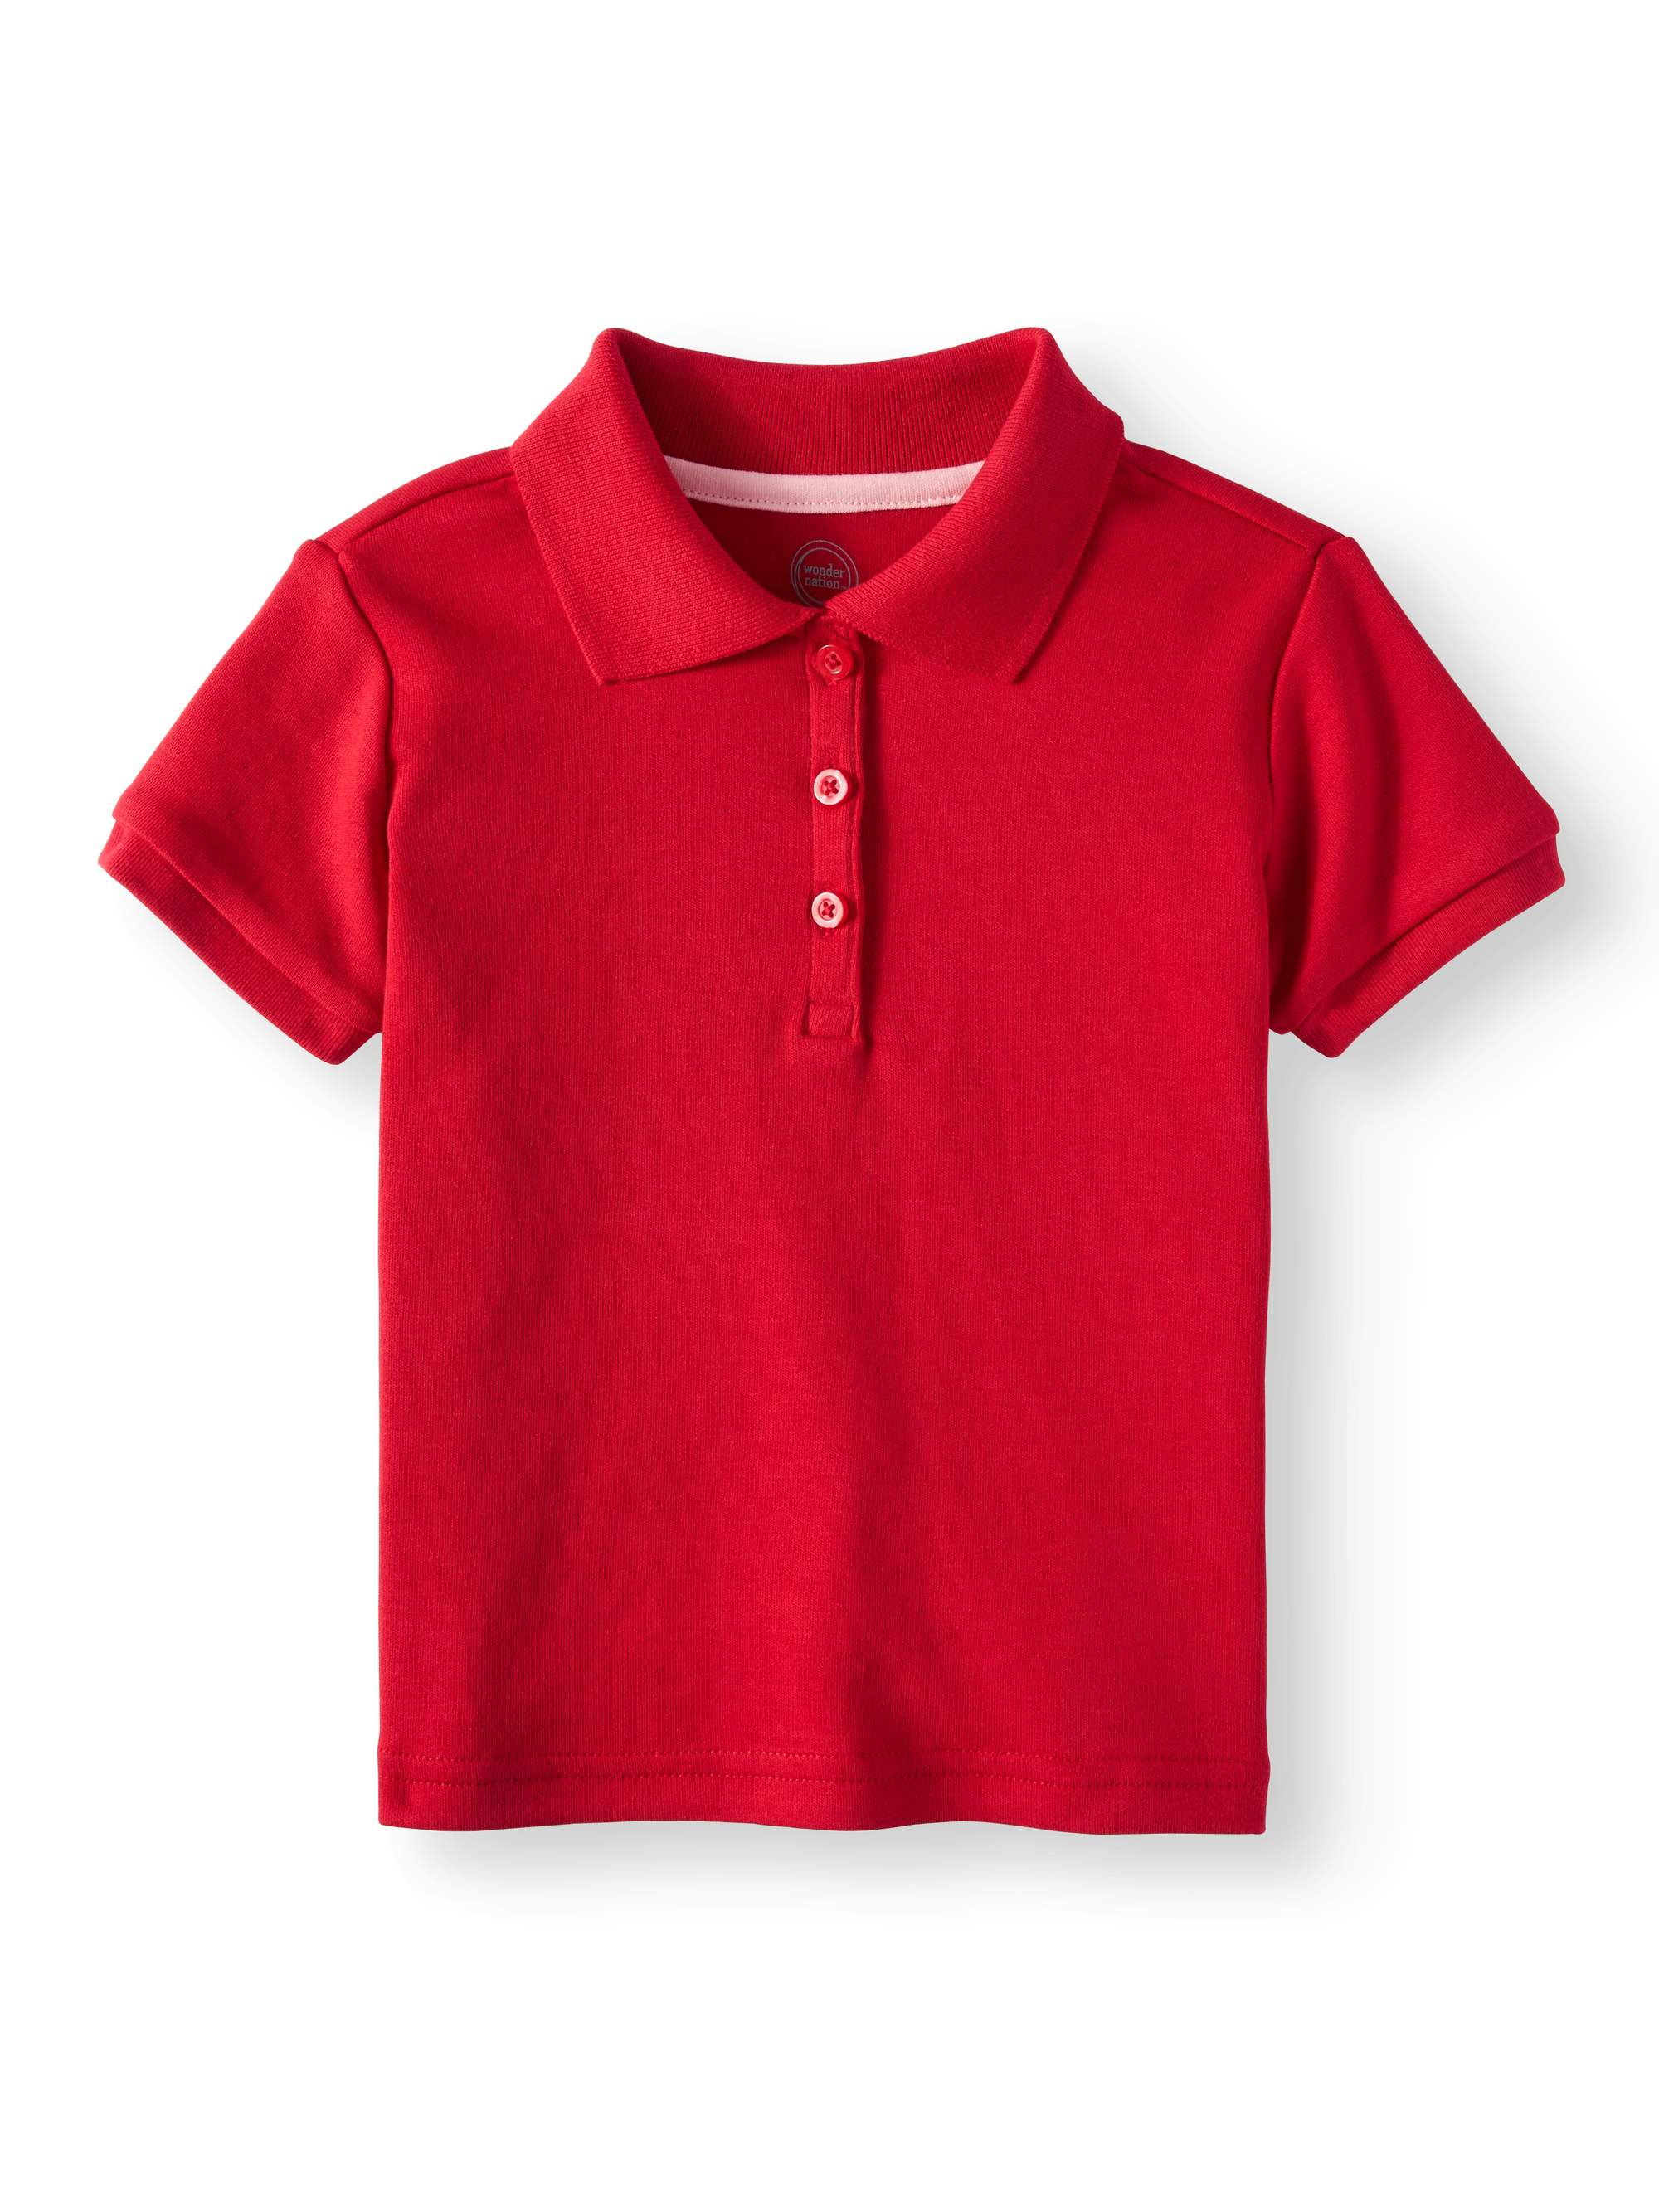 Wn Tod Girl Polo-sz 3t